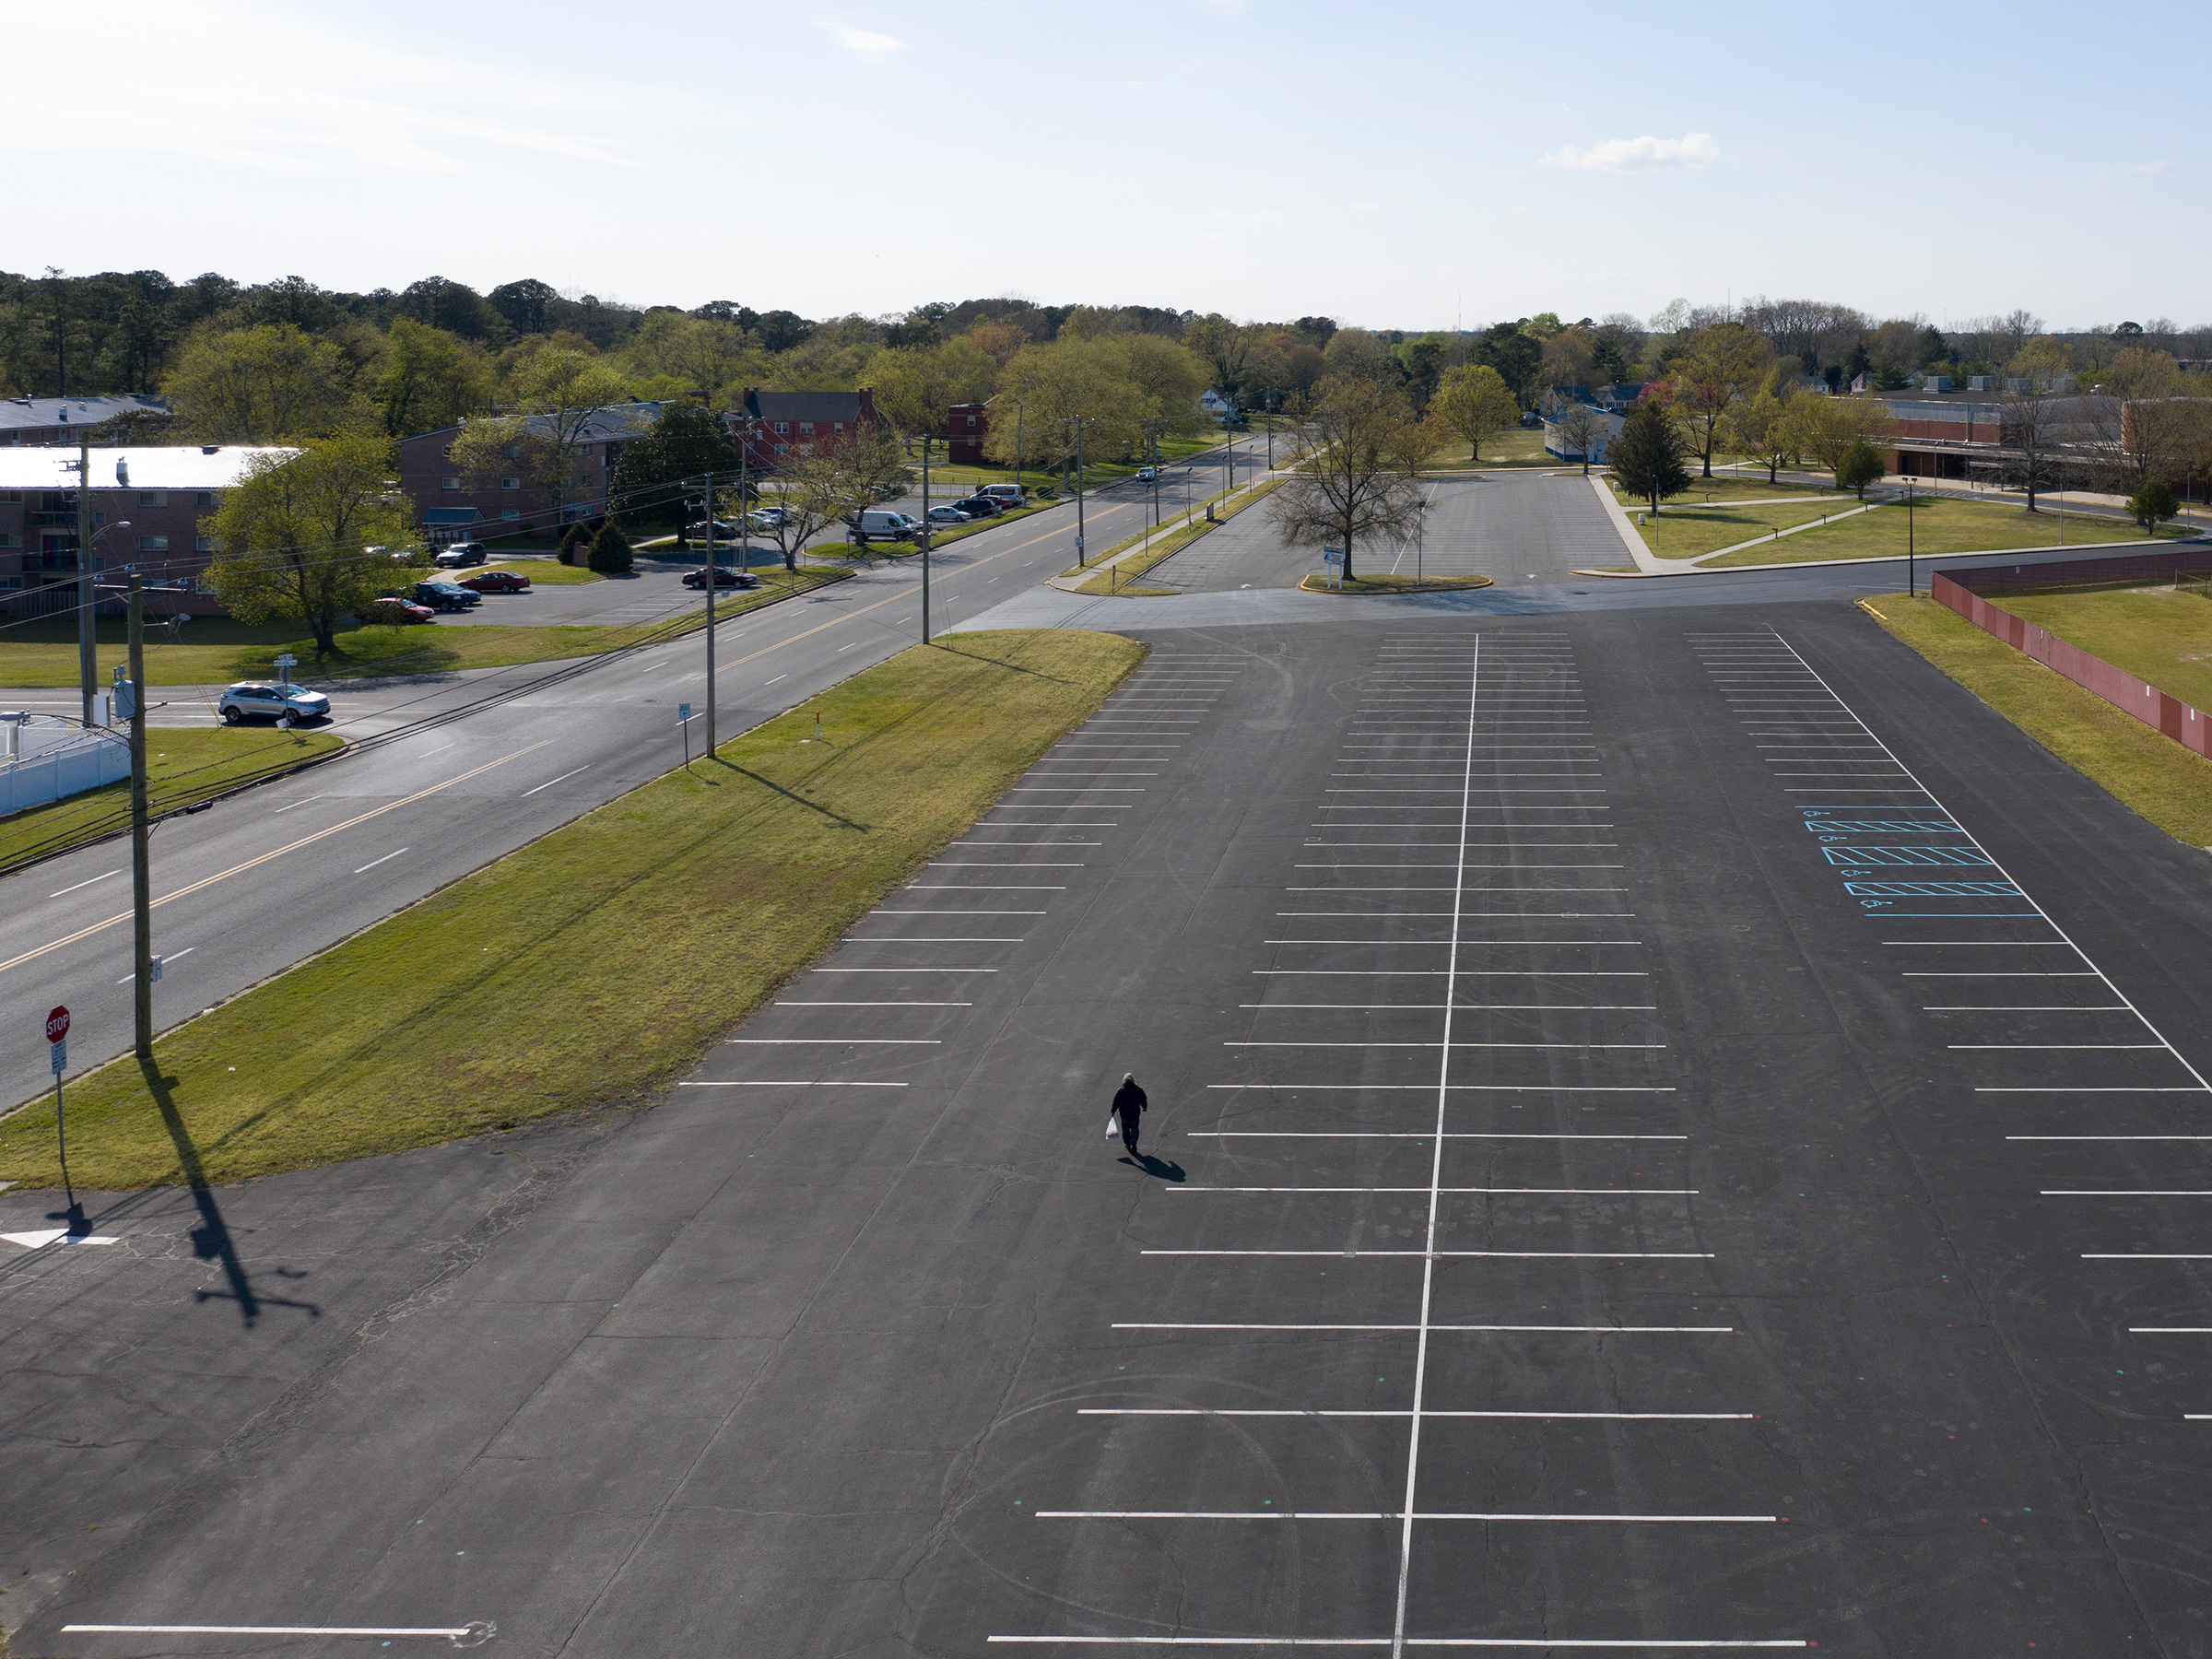 Salisbury, Md., April 11, 2020. A man walks through the parking lot of the Wicomico County Stadium.  Before the pandemic, there was no reason to notice an empty parking lot. Now, besides the supermarket and Wal-Mart, every parking lot is empty.